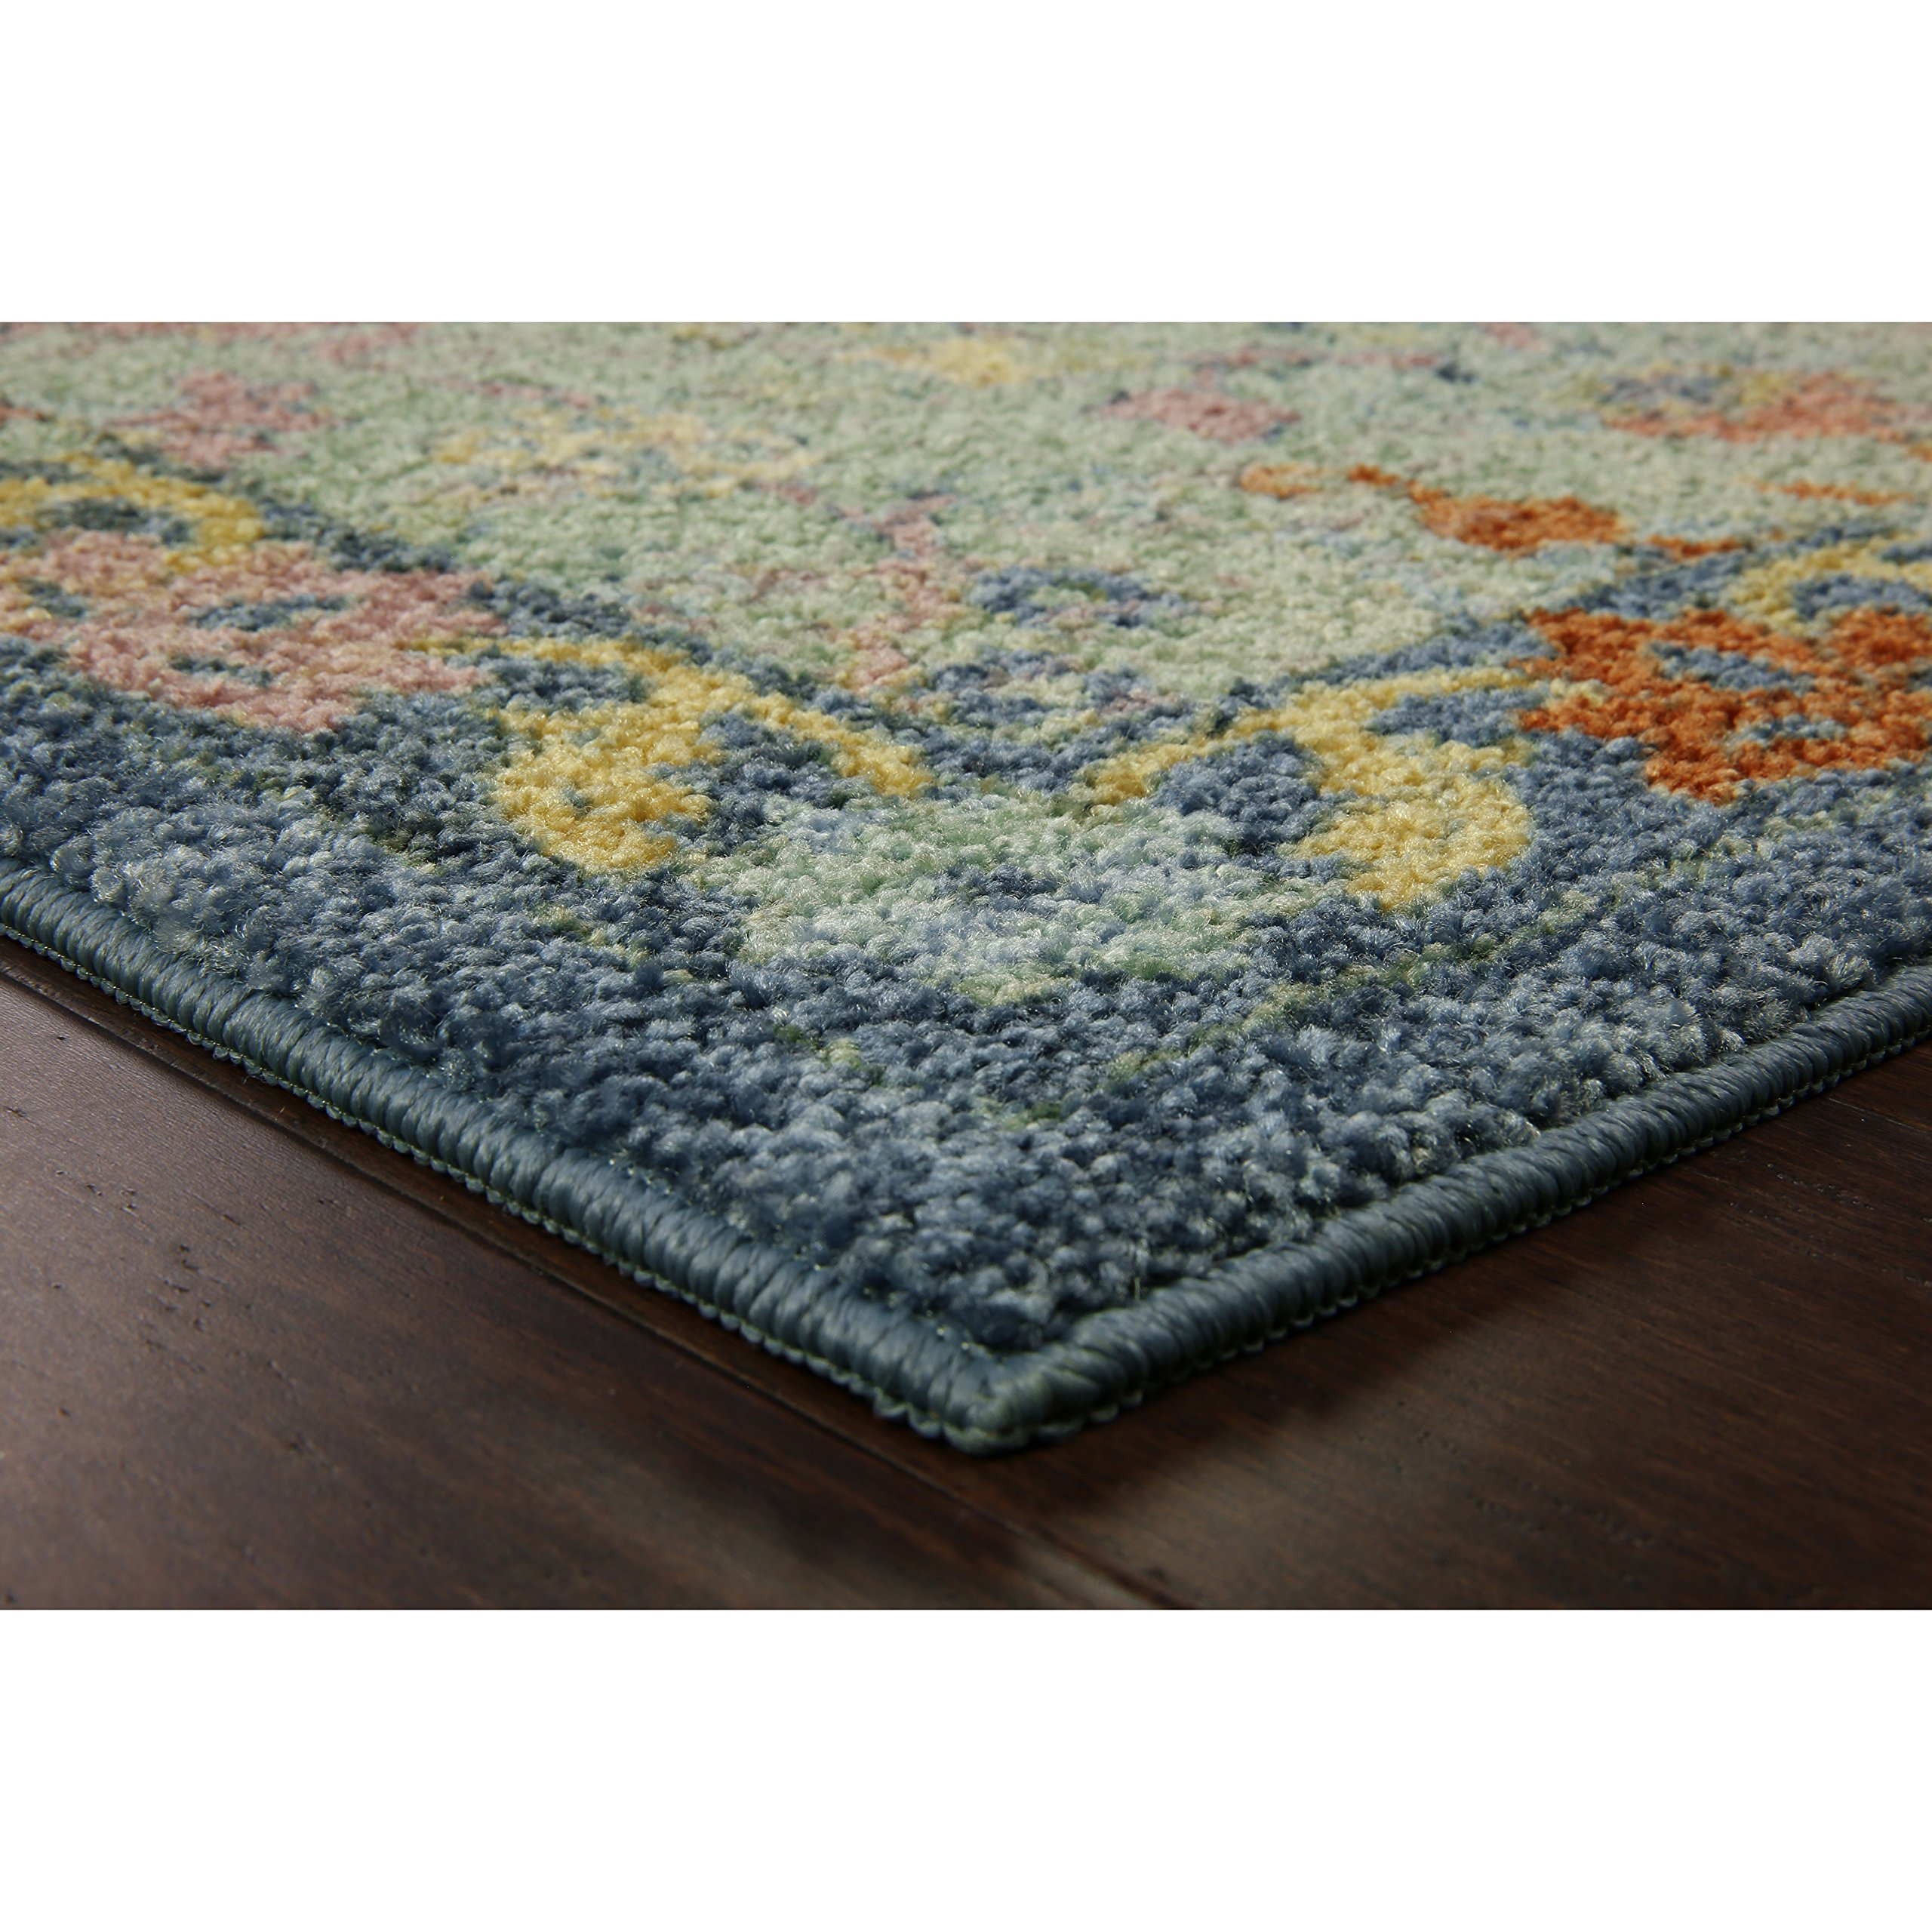 Area Rugs, Maples Rugs [Made in USA][Tilda Artwork Collection] 7' x 10' Non Slip Padded Large Rug for Living Room, Bedroom, and Dining Room by Maples Rugs (Image #2)